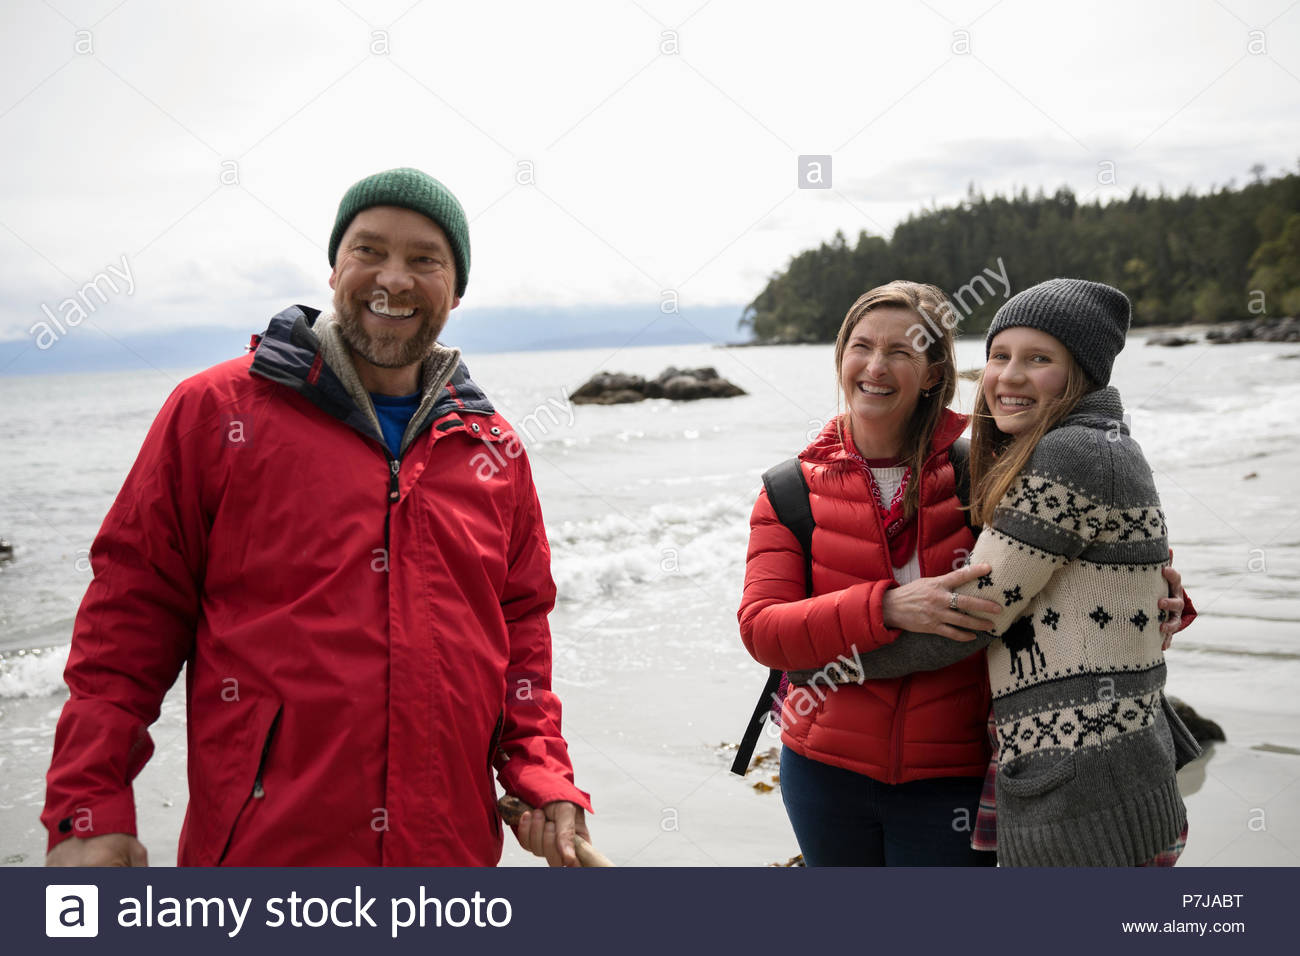 Happy family on rugged beach - Stock Image